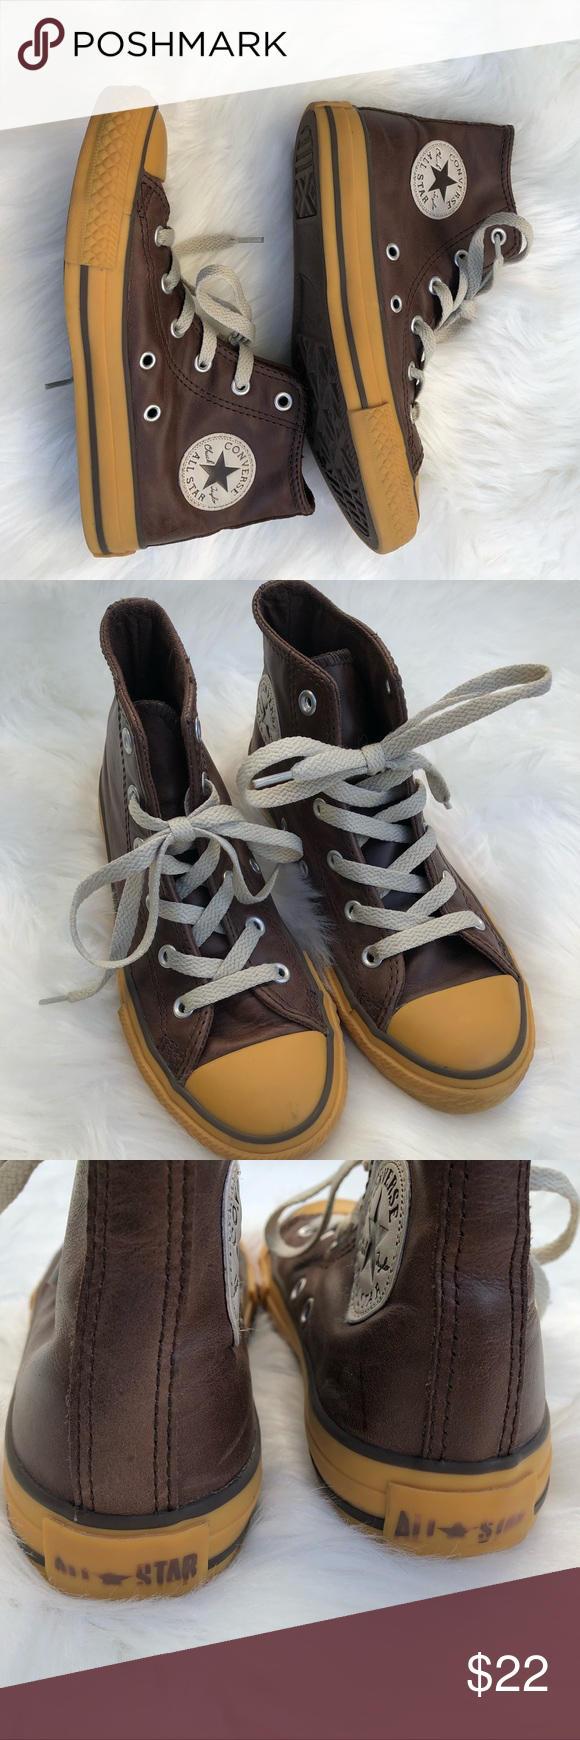 ca5c256d8395 Converse Brown Leather Boys size 1 Beautiful unique leather converse this  style is very rare and